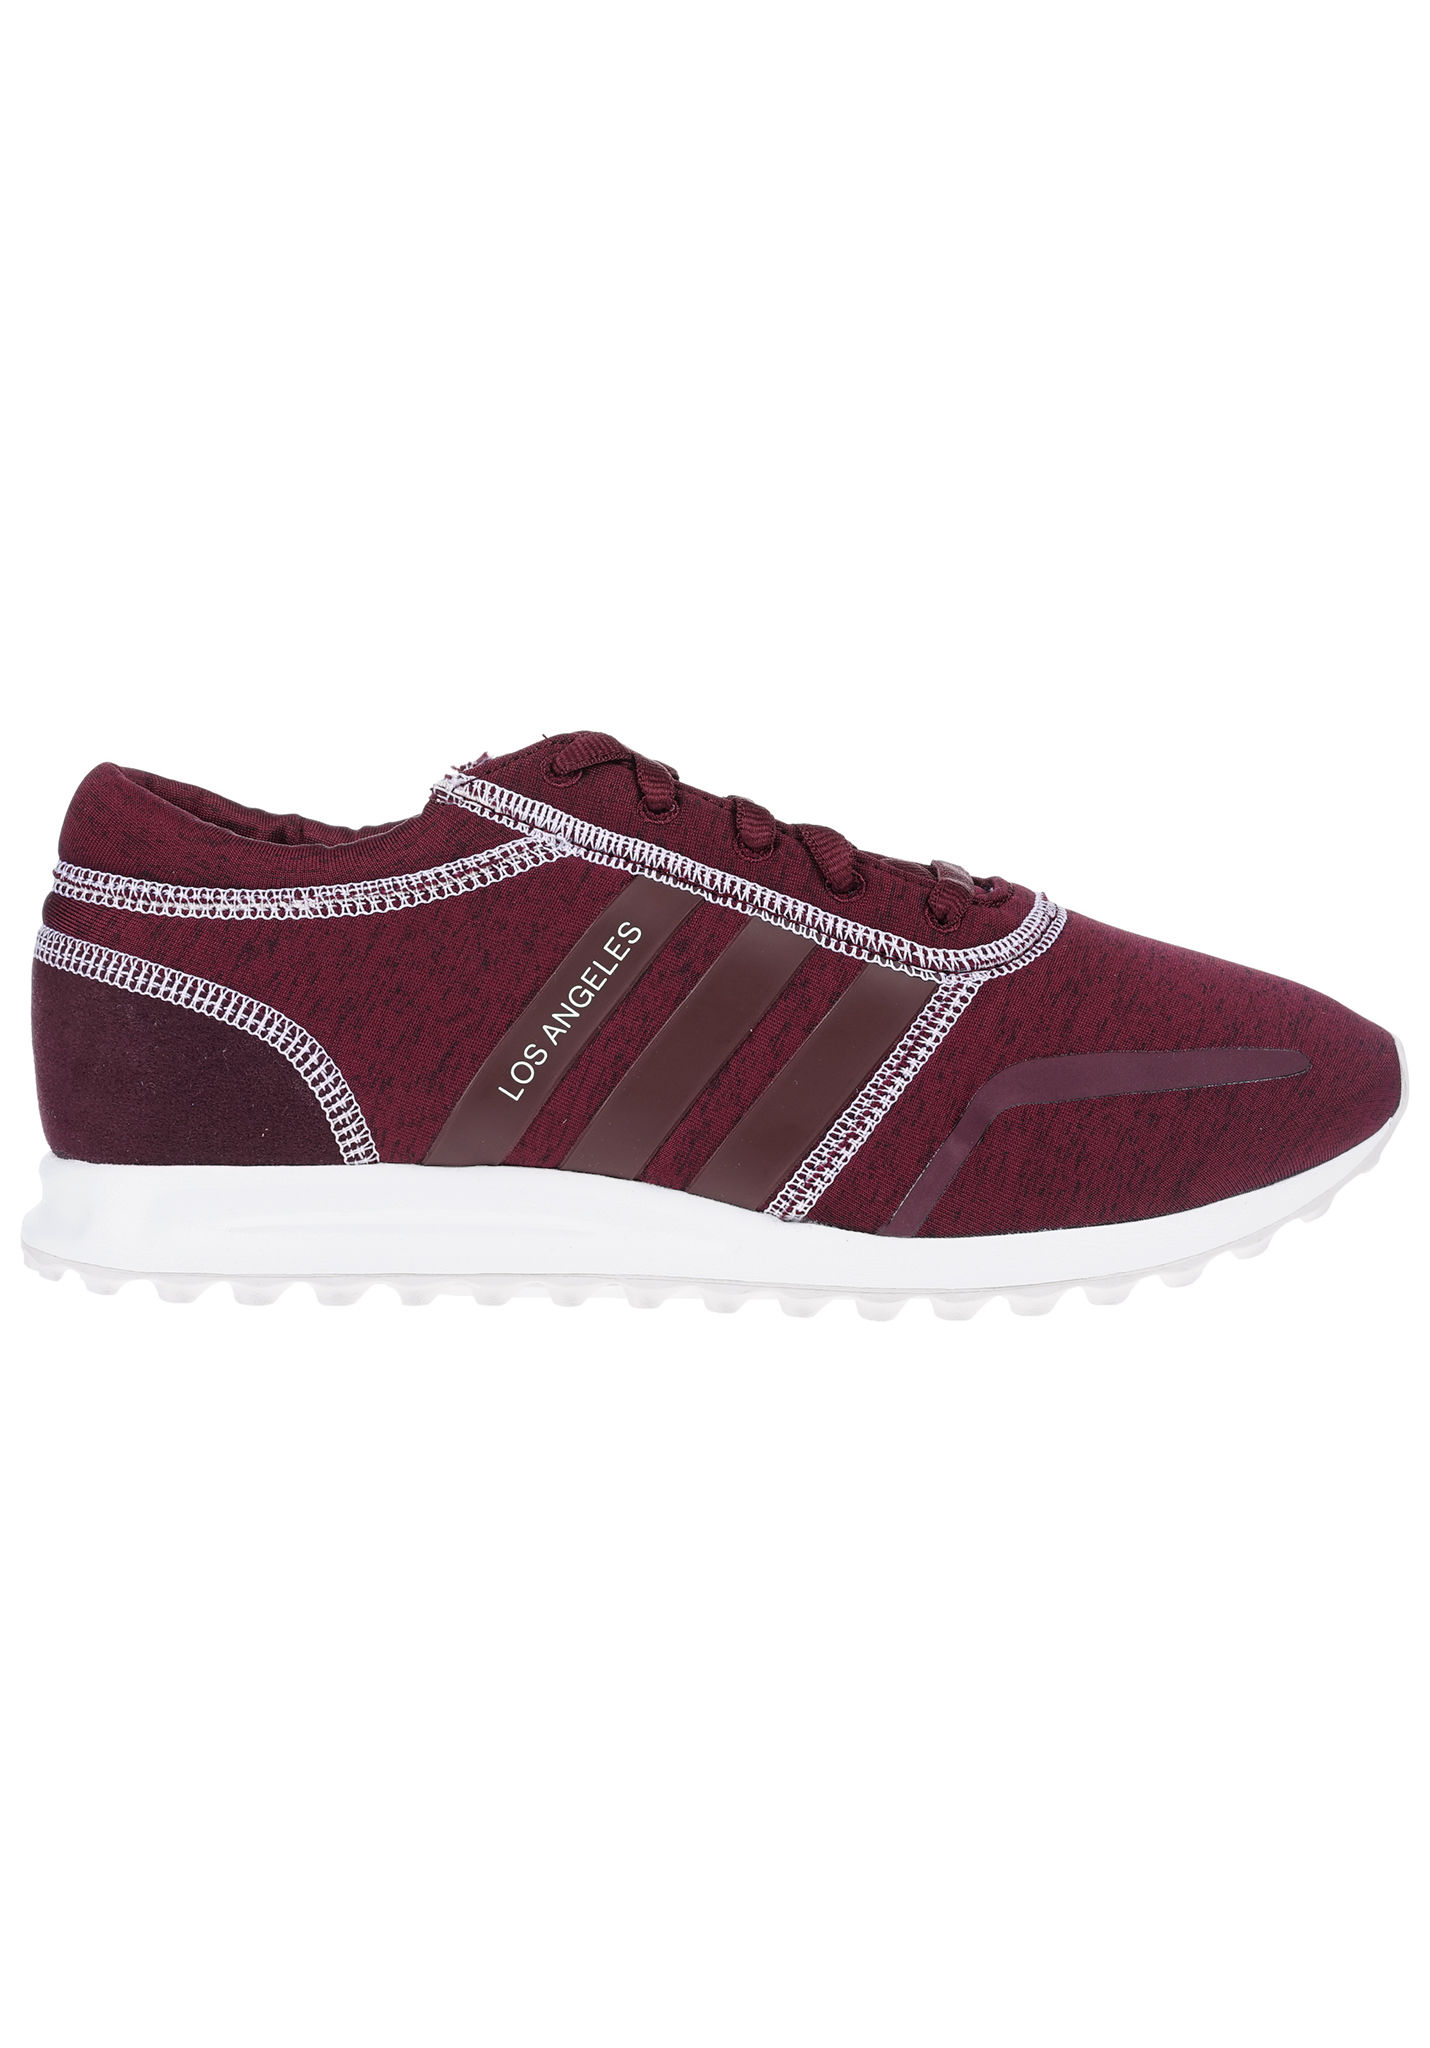 best loved b54bc 89654 ADIDAS ORIGINALS Los Angeles - Sneakers for Women - Red - Pl